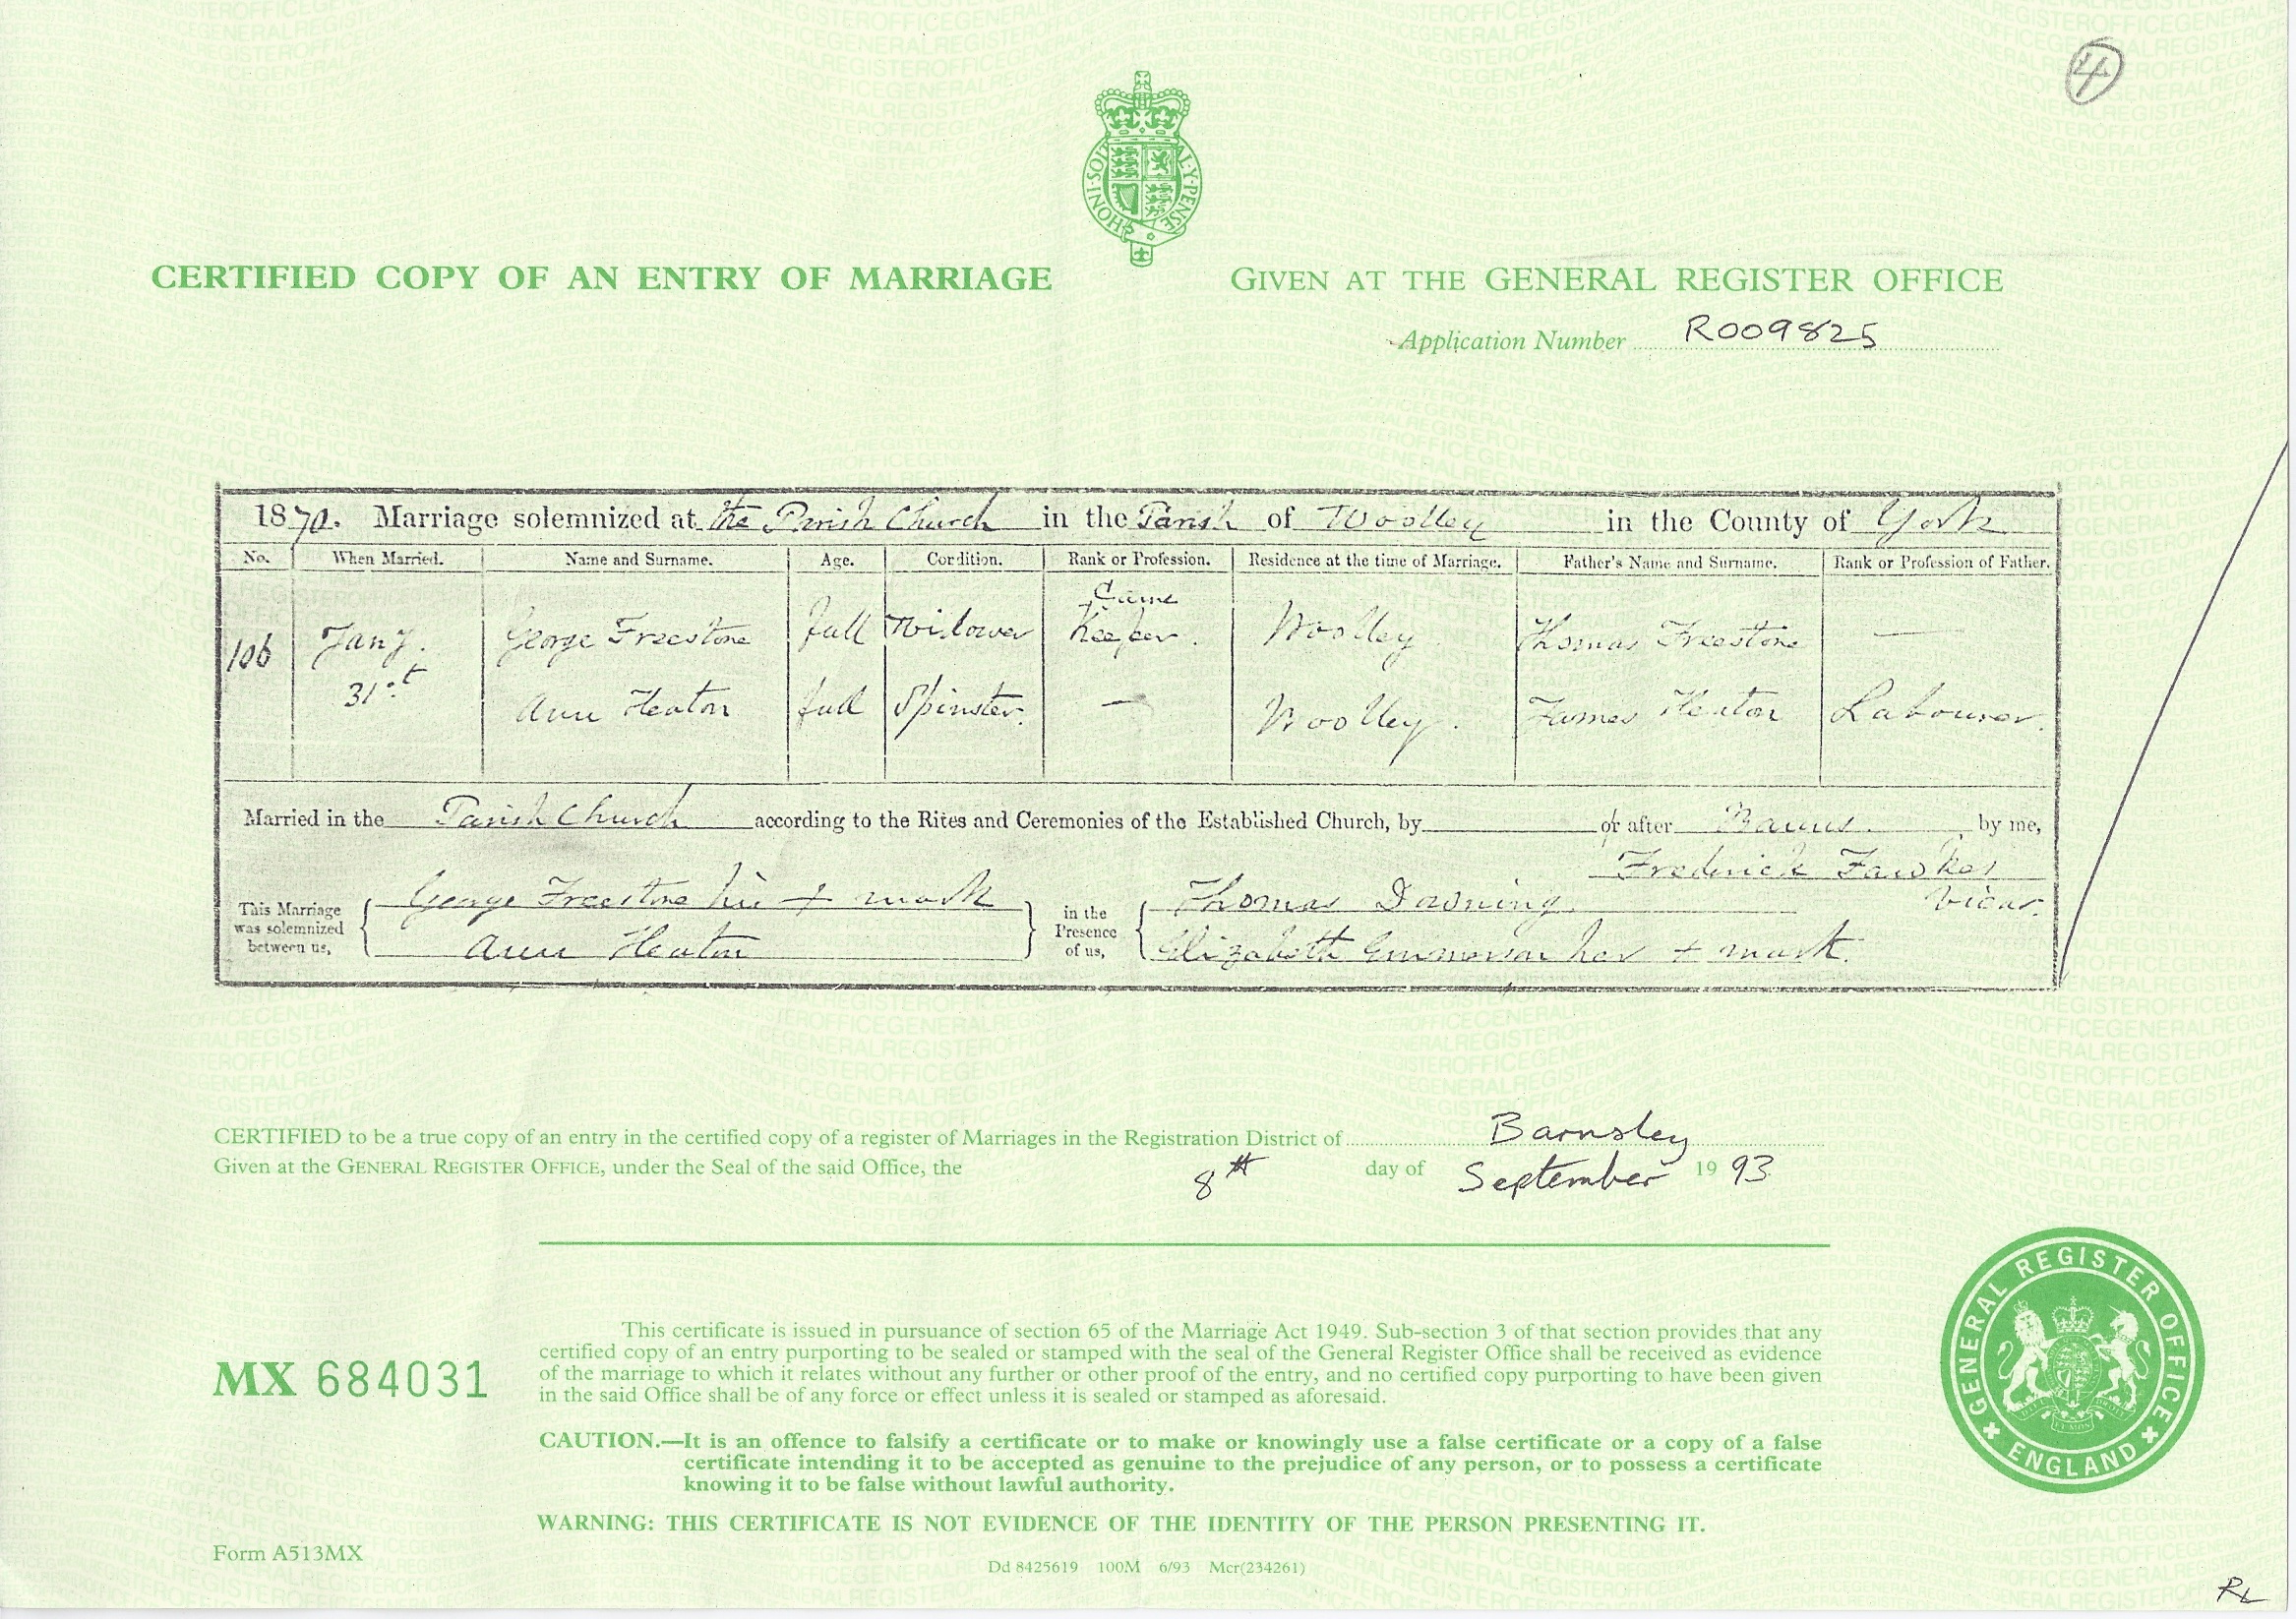 Marriage Certificate for George Freestone and Ann Heaton